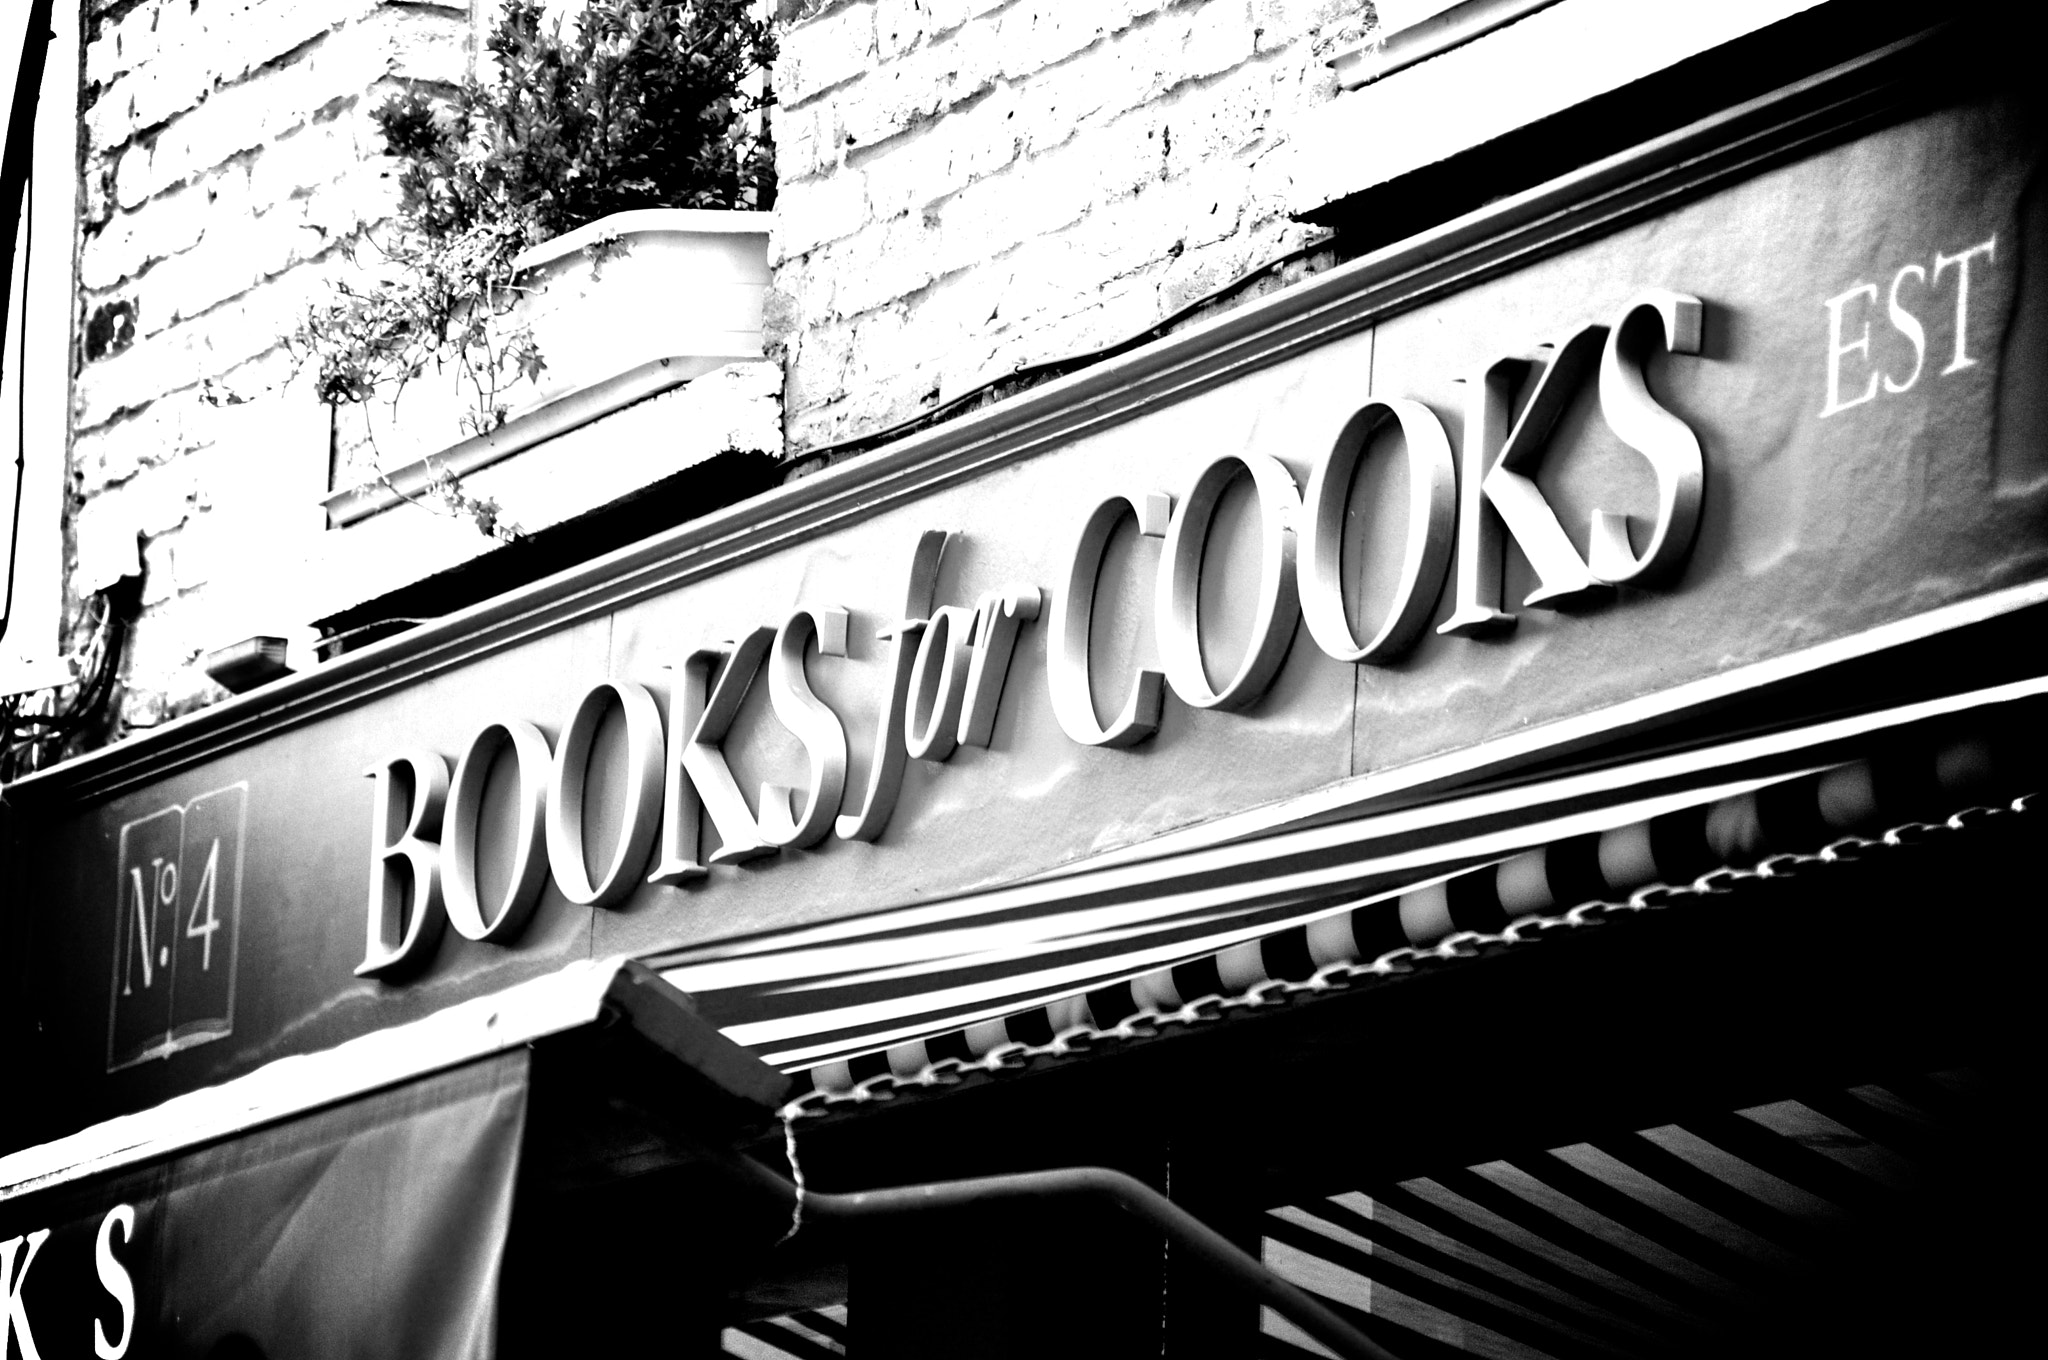 Photograph Books for Cooks by x4rop . on 500px